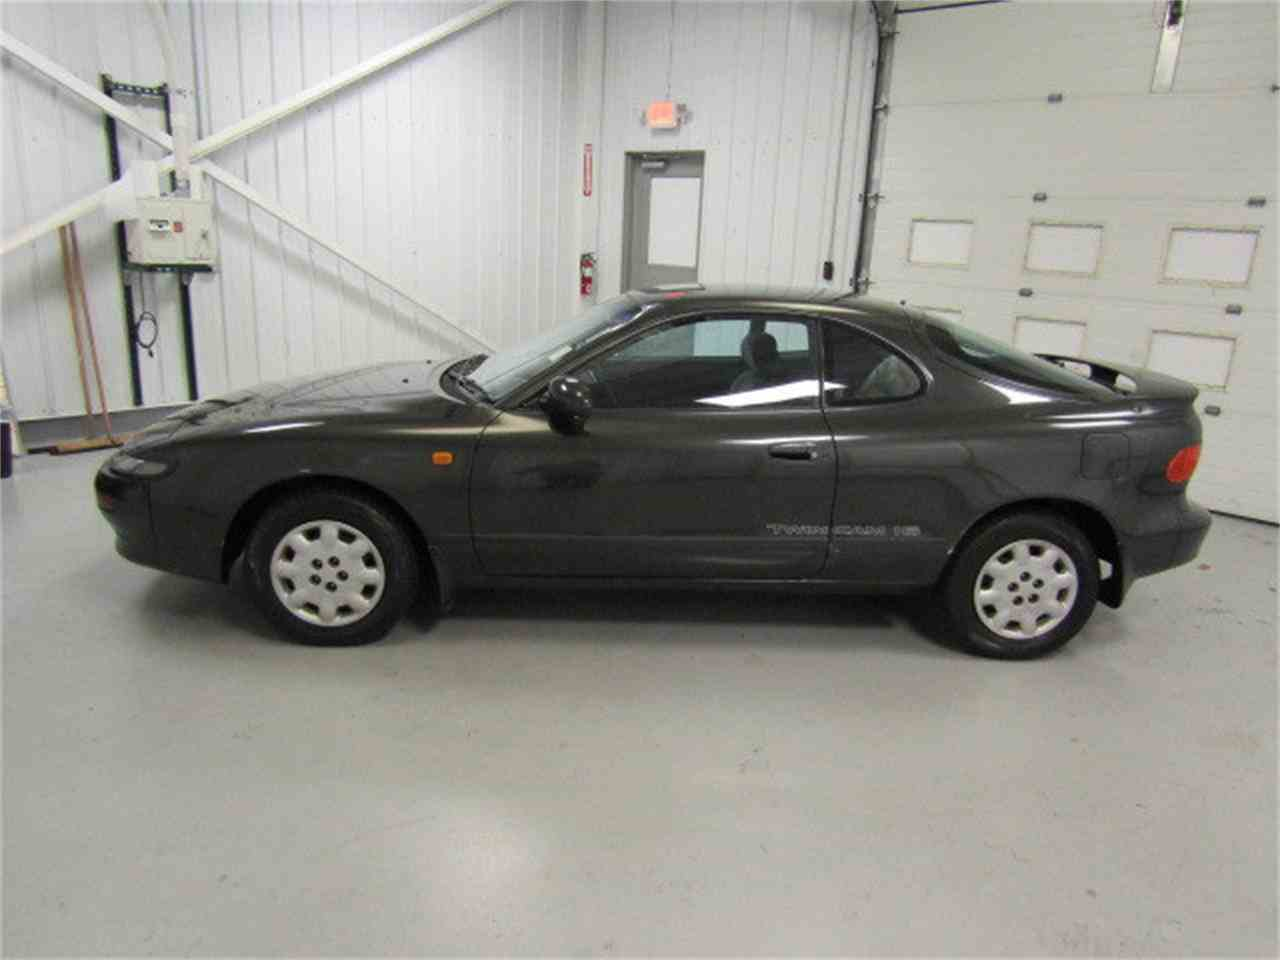 Large Picture of 1989 Toyota Celica located in Christiansburg Virginia - $10,831.00 - JM31